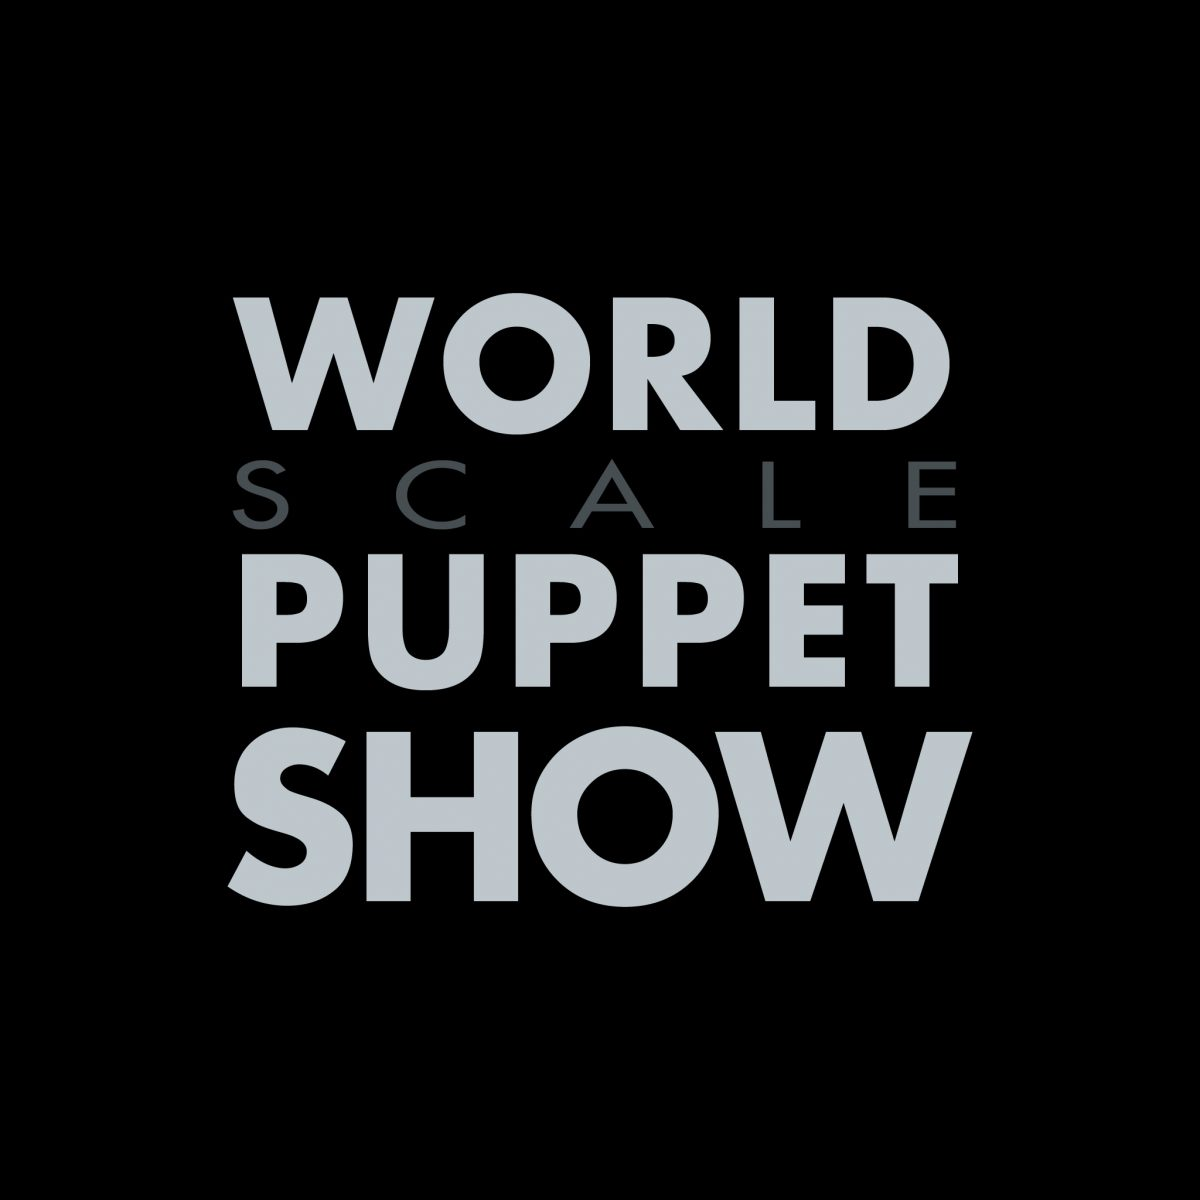 World scale puppet show, design, digital, ch3